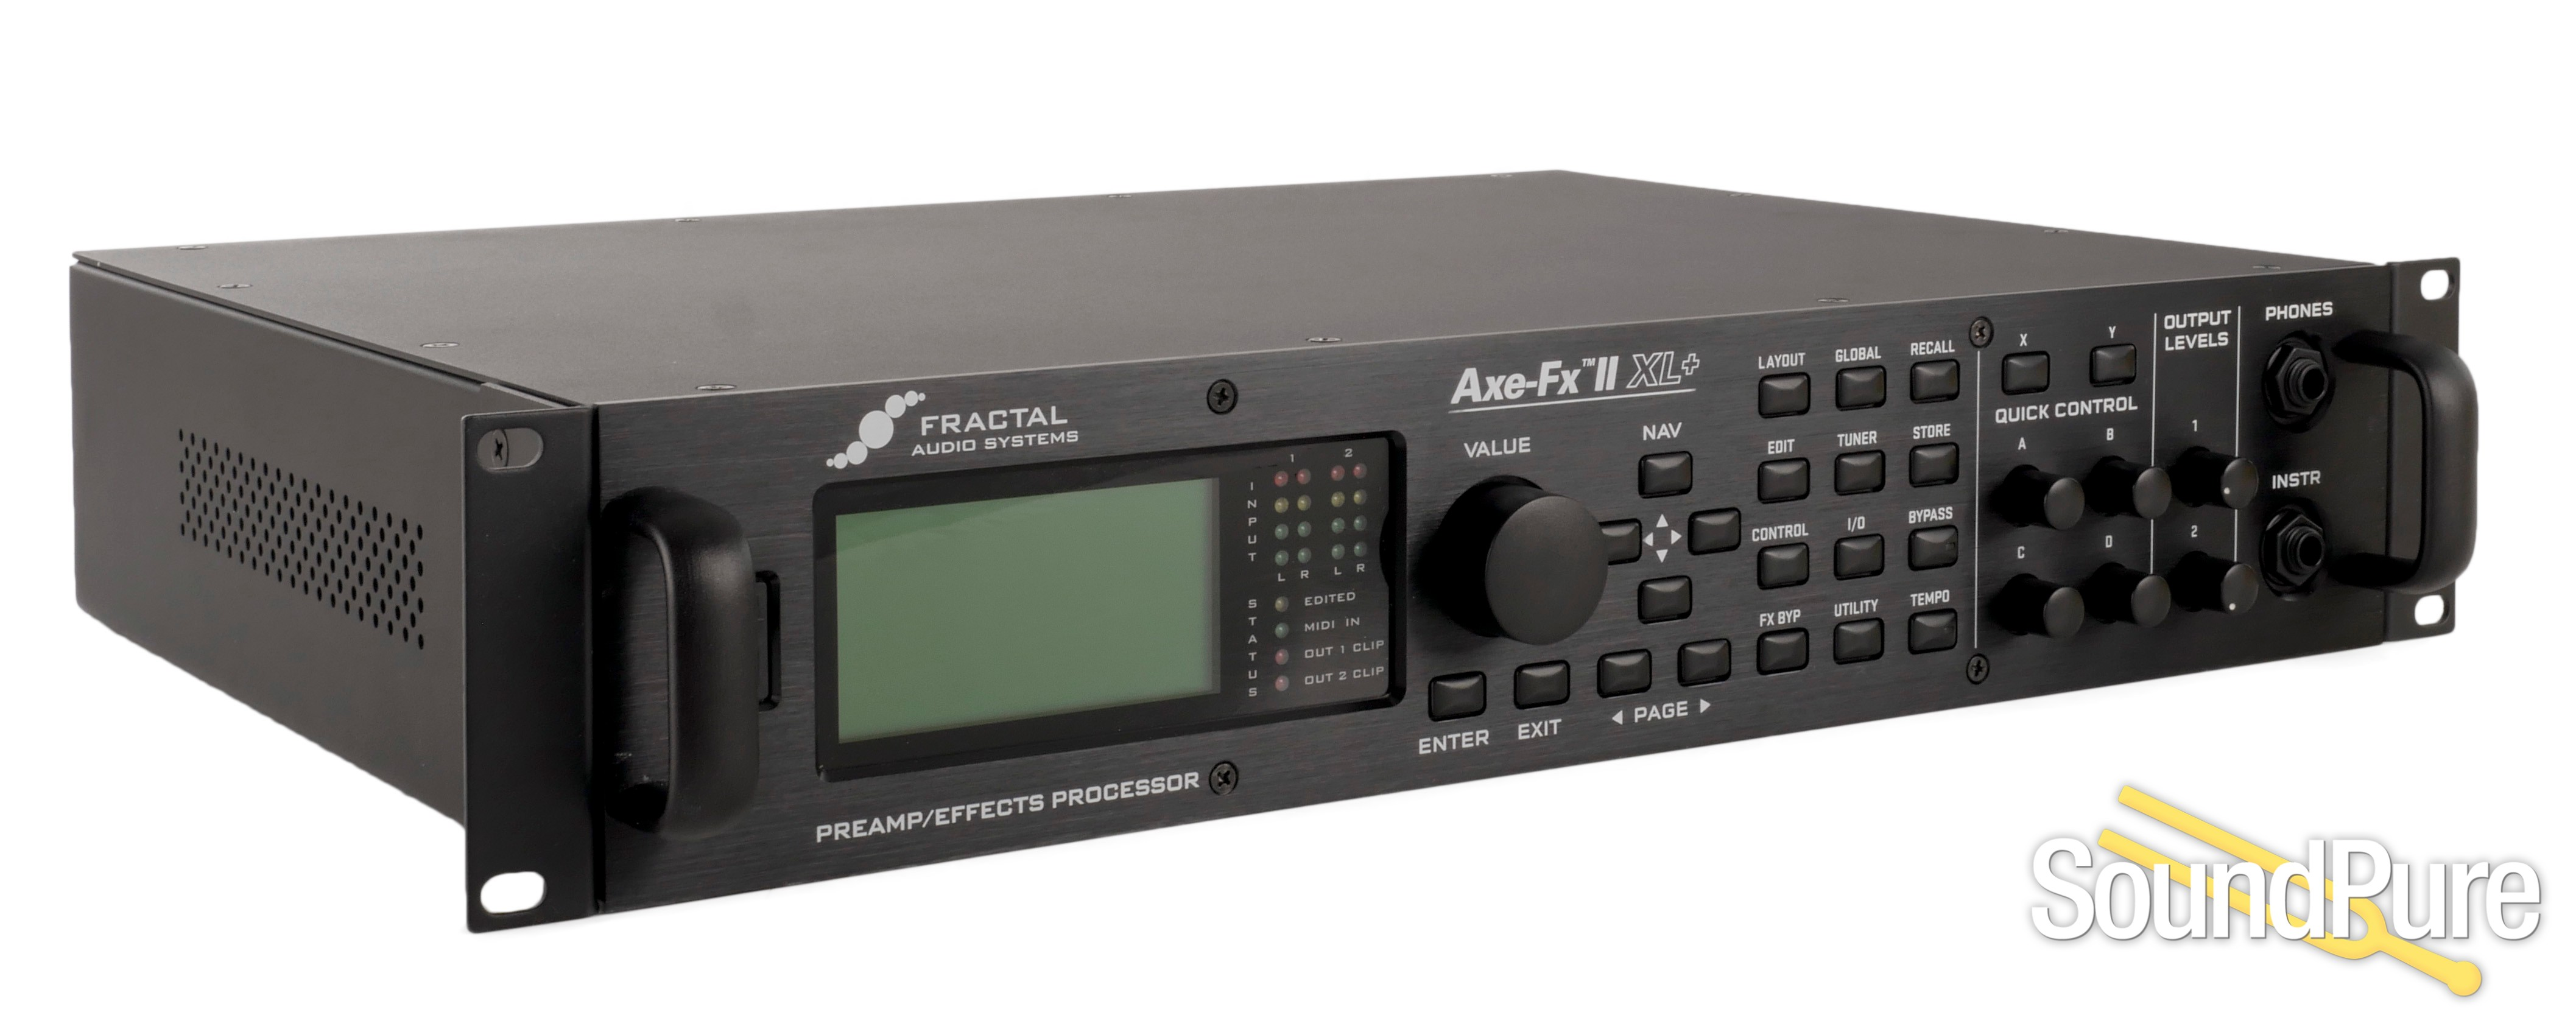 Fractal Audio Axe FXII XL+ W/ MFC-101 And EV-1 - Used